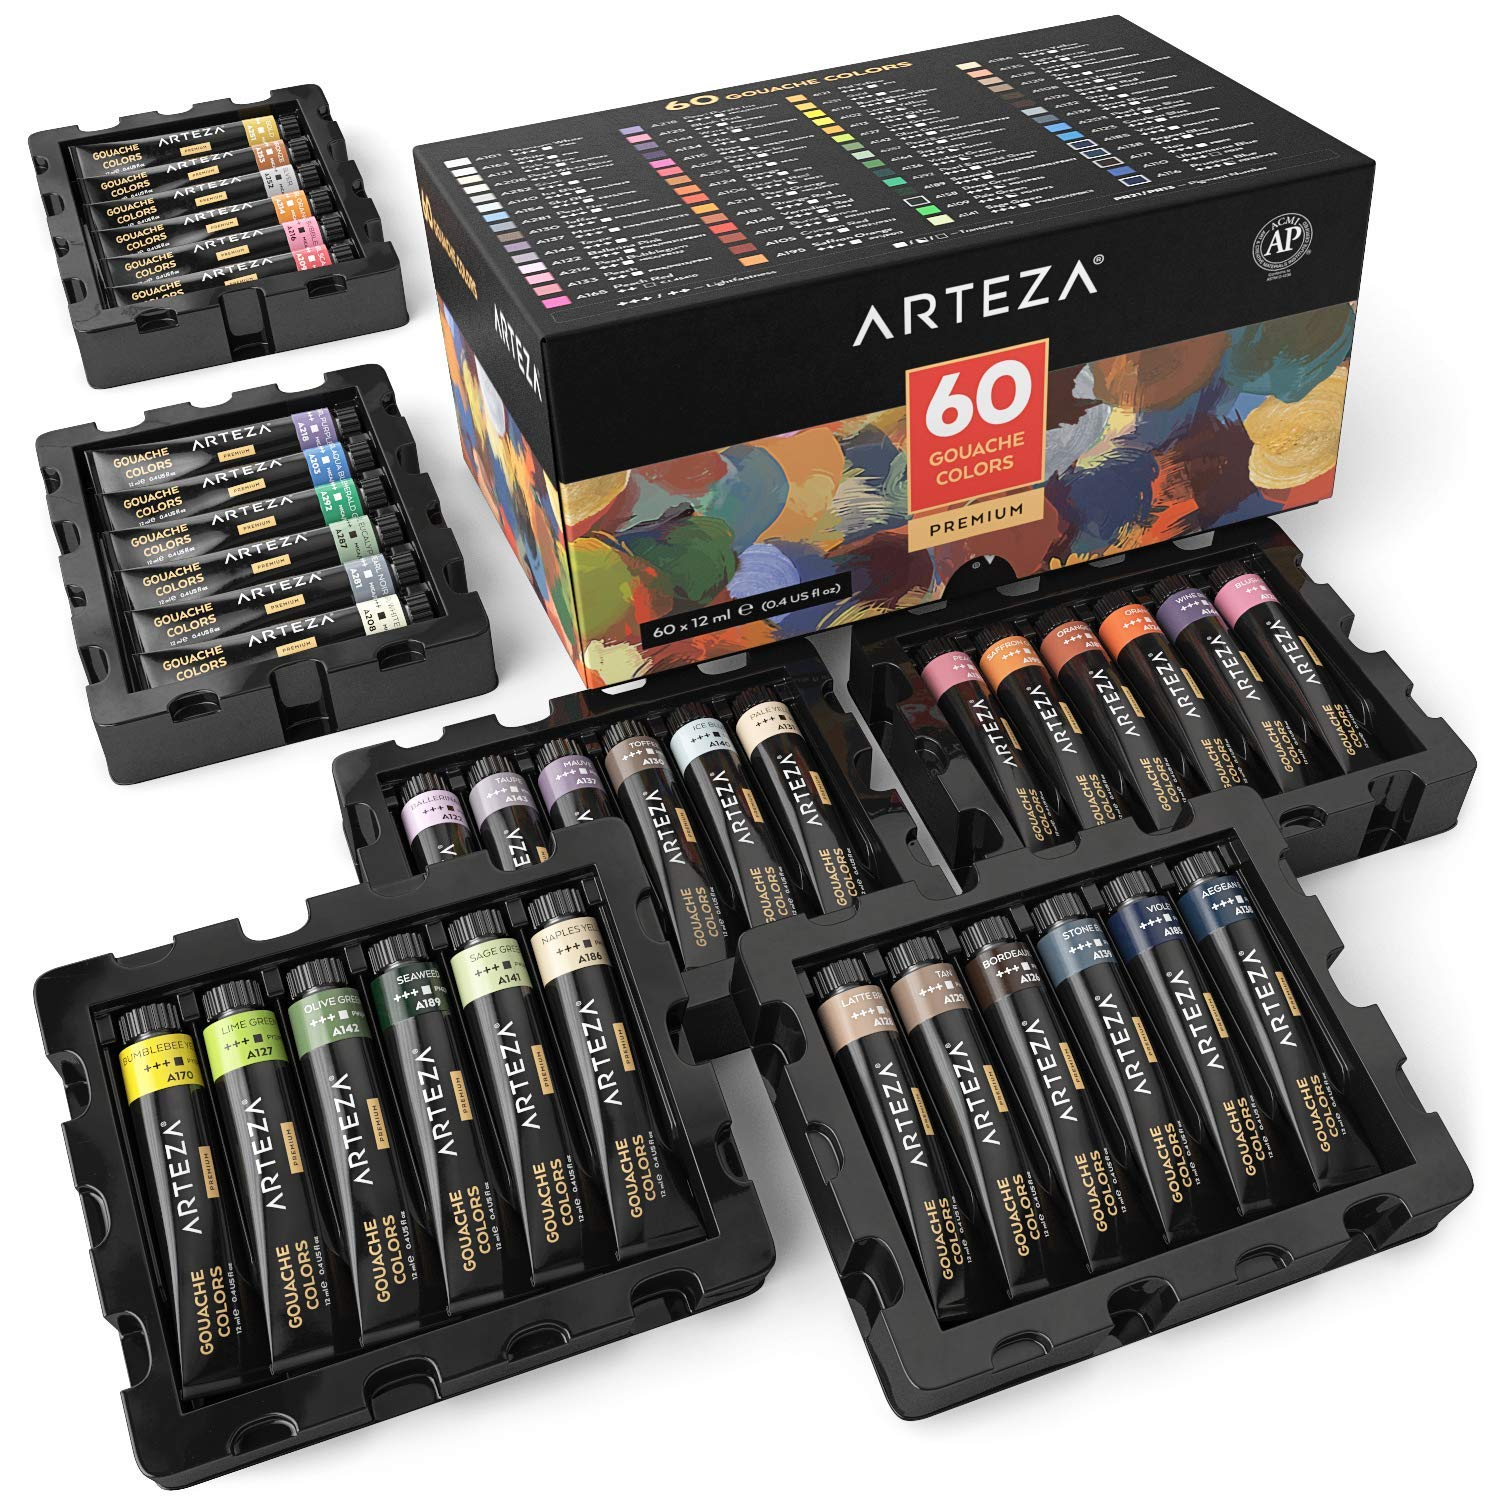 ARTEZA Gouache Paint, Set of 60 Colors/Tubes (12 ml/0.4 US fl oz) Opaque Paints, Ideal for Canvas Painting, Watercolor Paper, Toned Paper, or Using with Watercolors and Mixed Media by ARTEZA